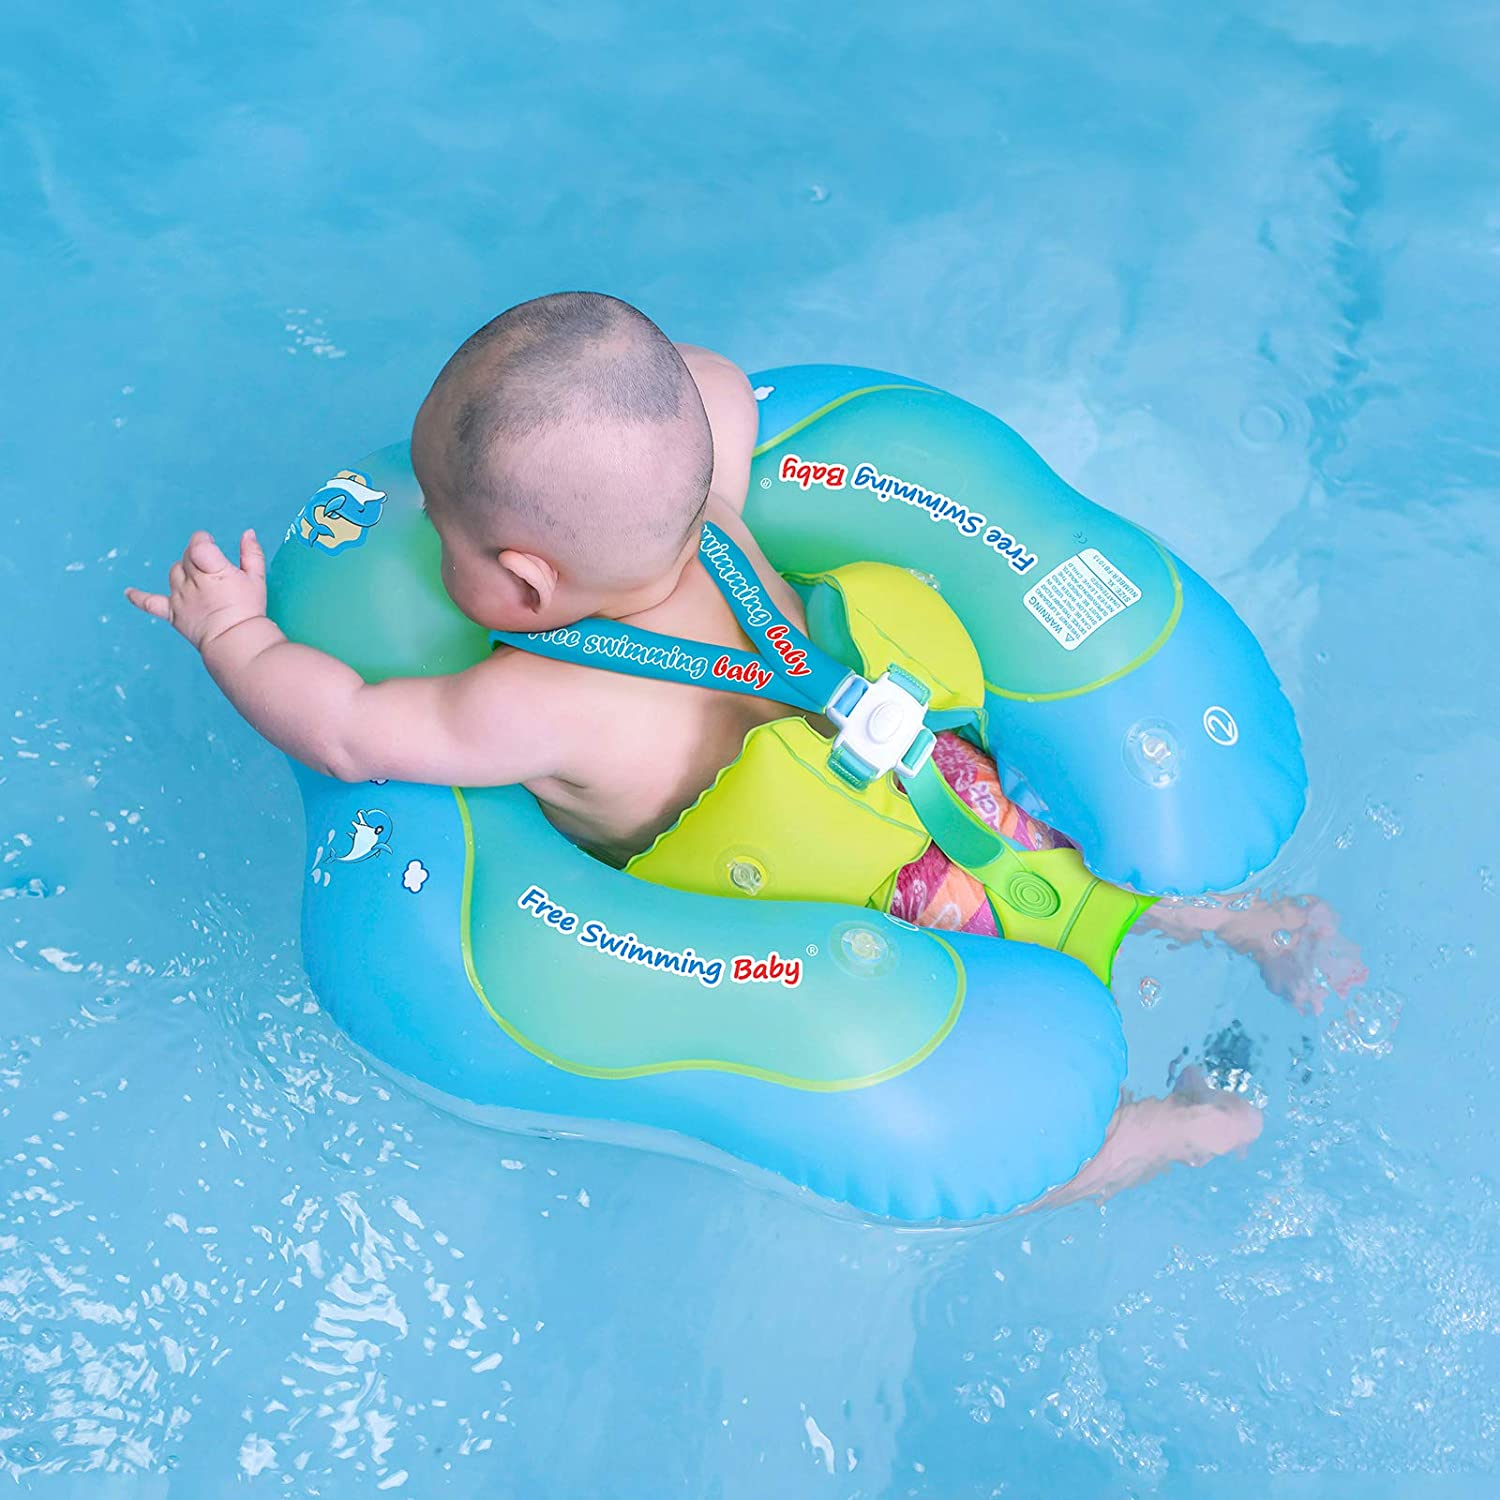 Free Swimming Baby Inflatable Baby Swim Float Children Waist Ring Inflatable Pool Floats Toys Swimming Pool Accessories For The Age Of 3 72 Months Blue S Toys Games